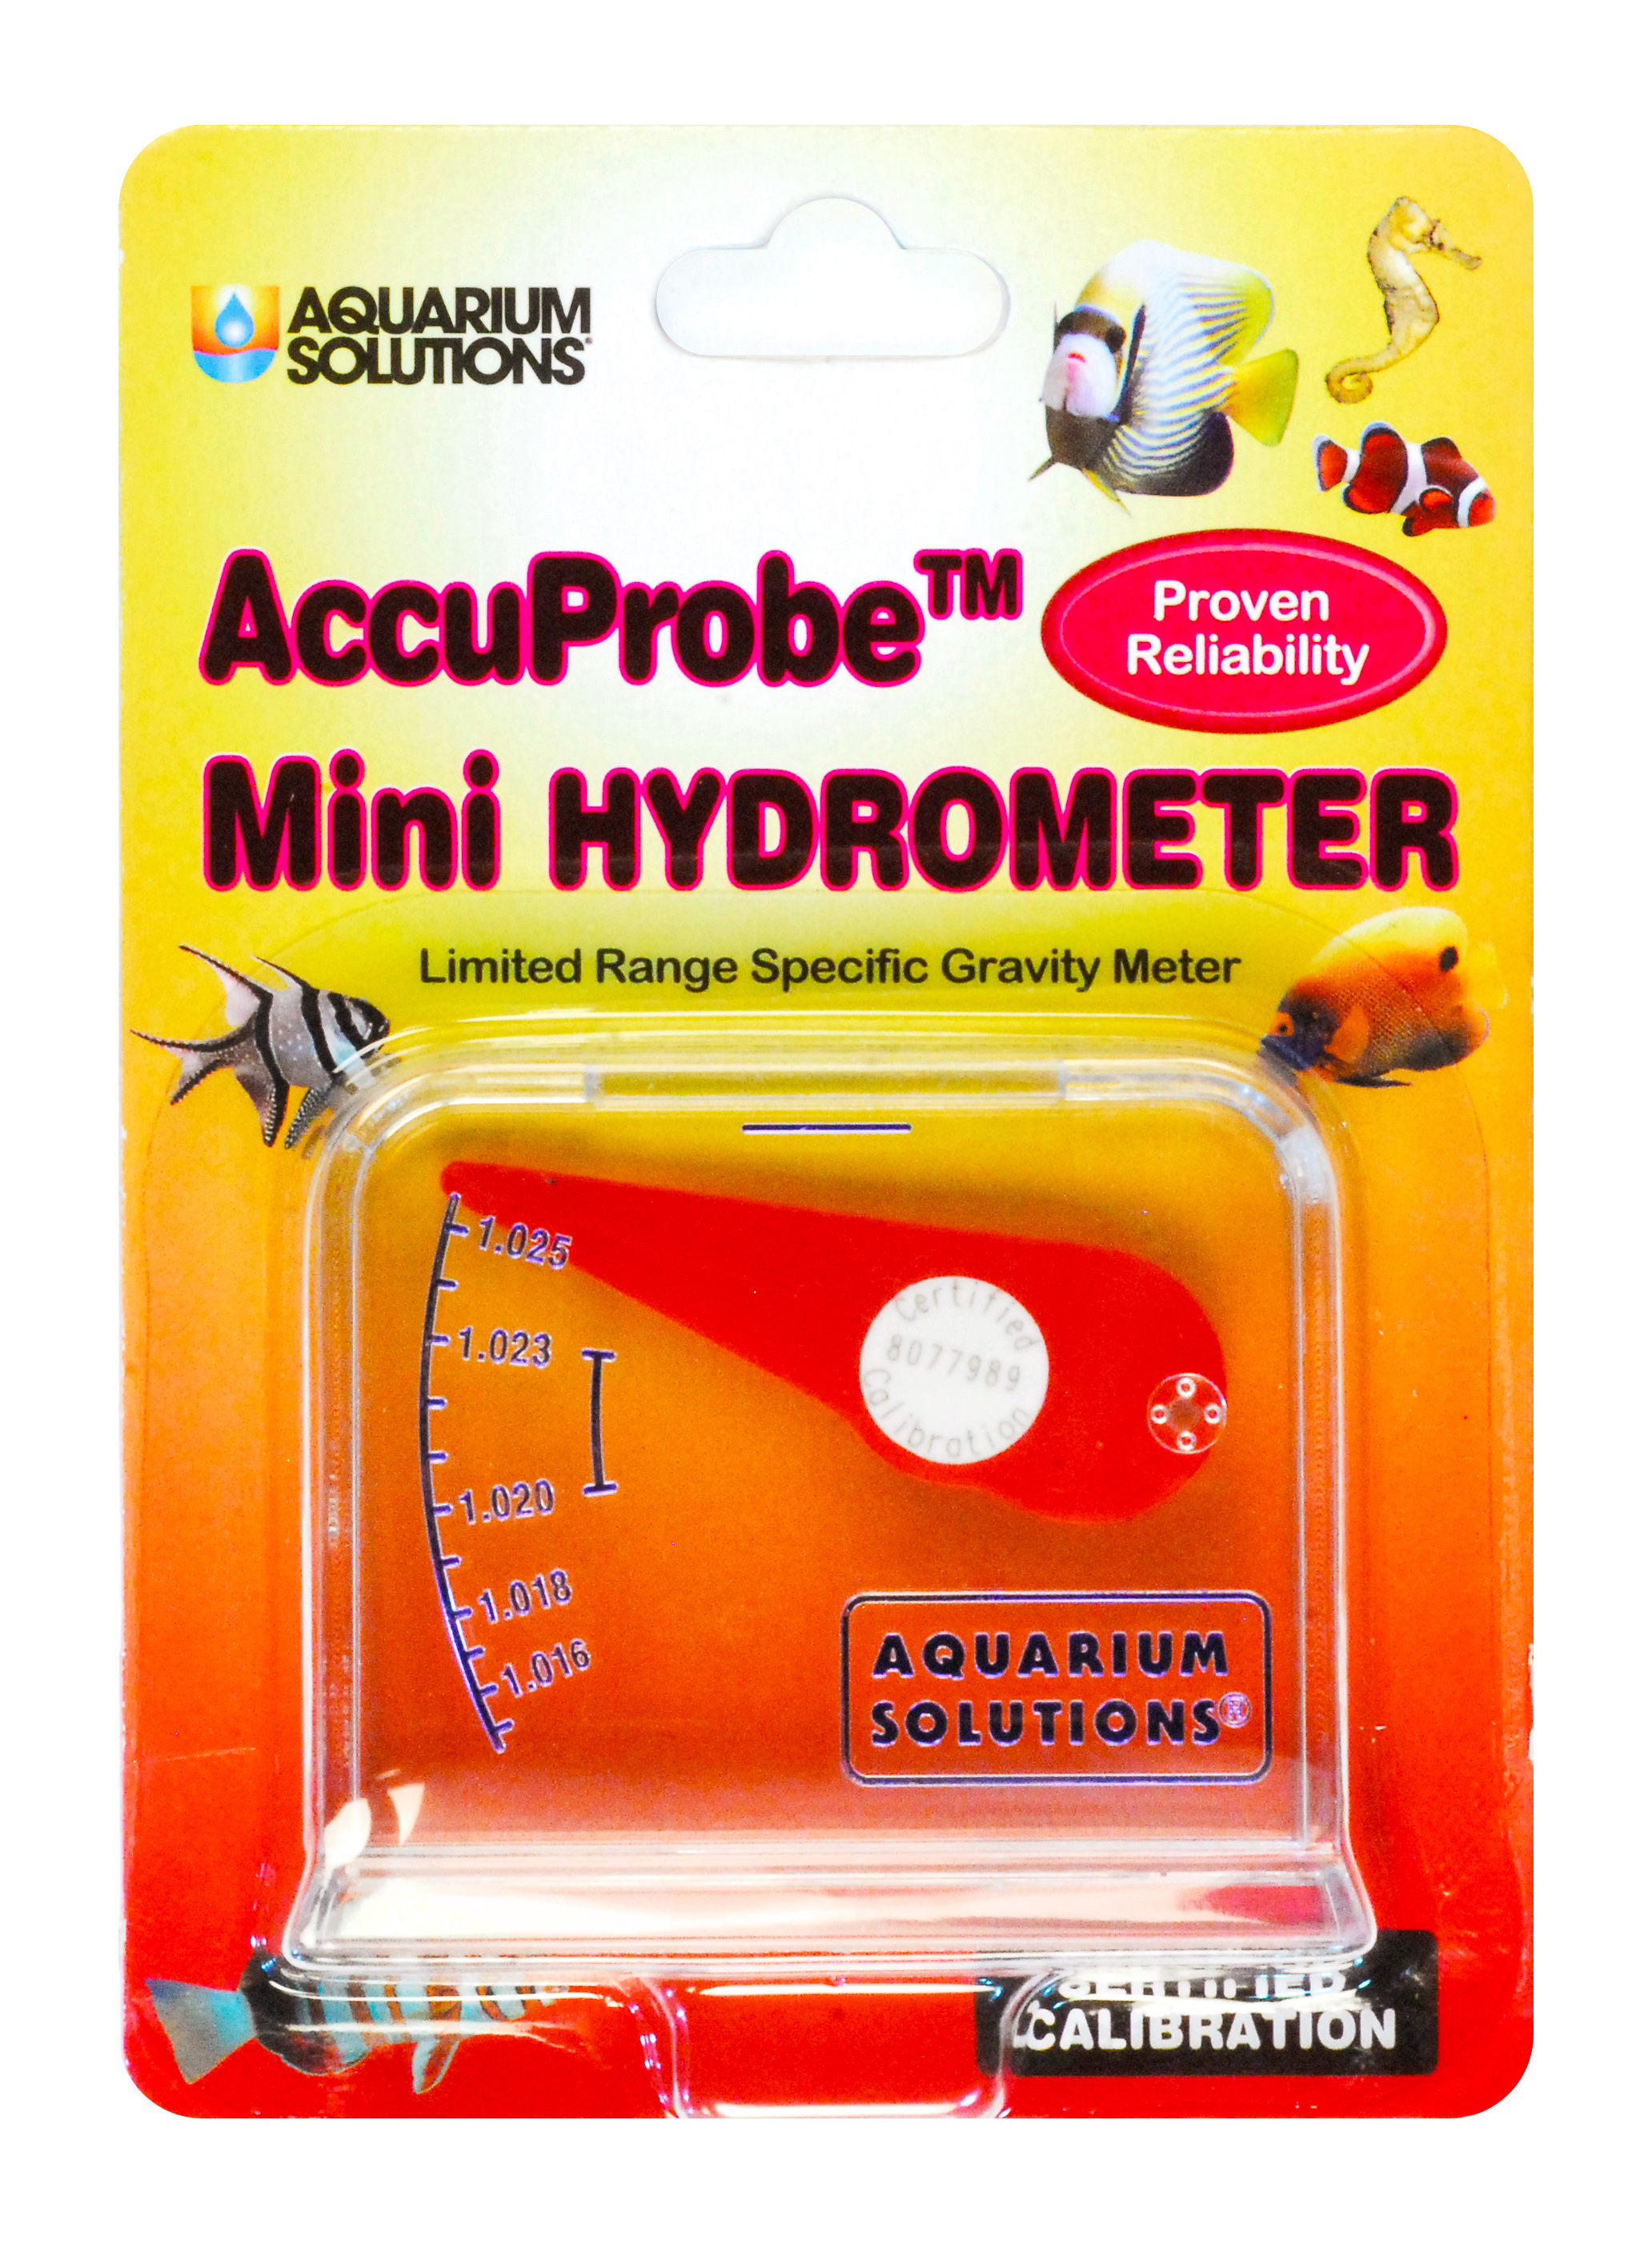 Aquarium Solutions® AccuProbe™ Mini Hydrometer - Limited Range Specific Gravity Meter For Marine Aquarium Use